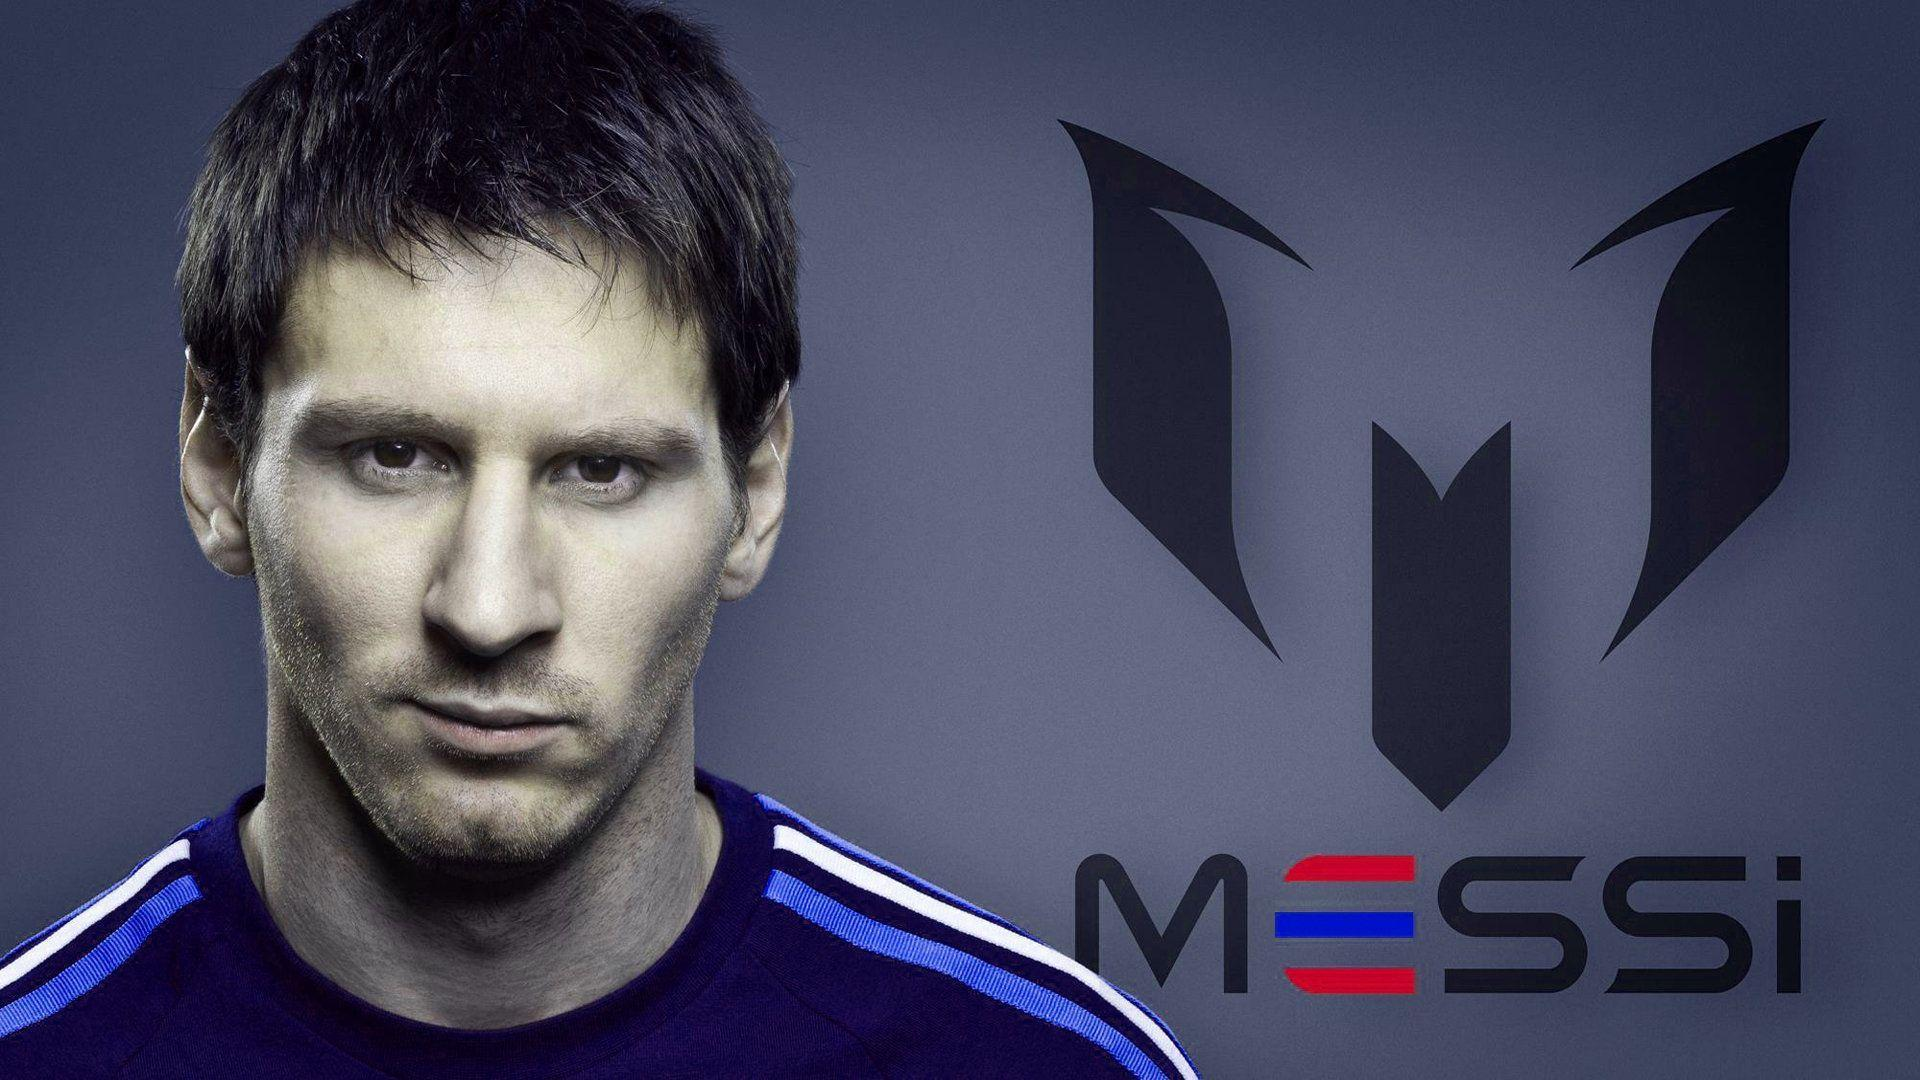 Lionel Messi 2015 1080p HD Wallpapers - Wallpaper Cave